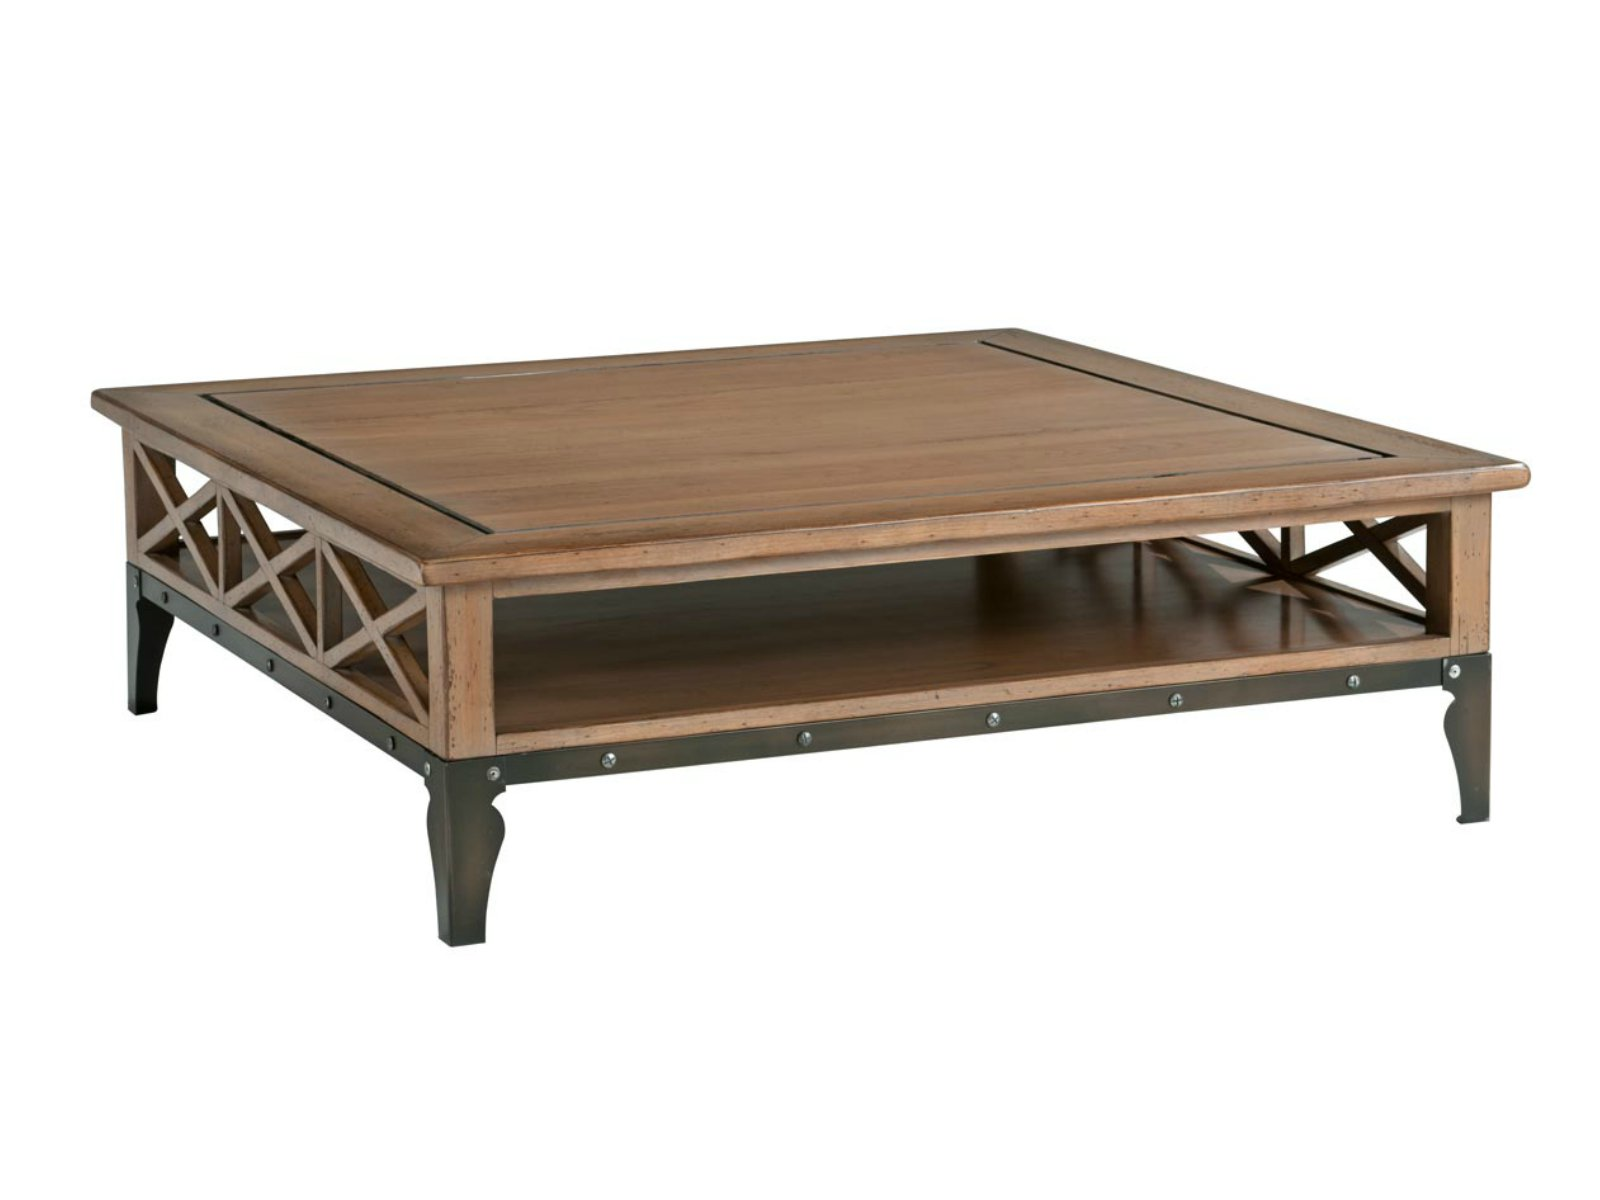 Architecte square coffee table by roche bobois - Table ovale marbre roche bobois ...